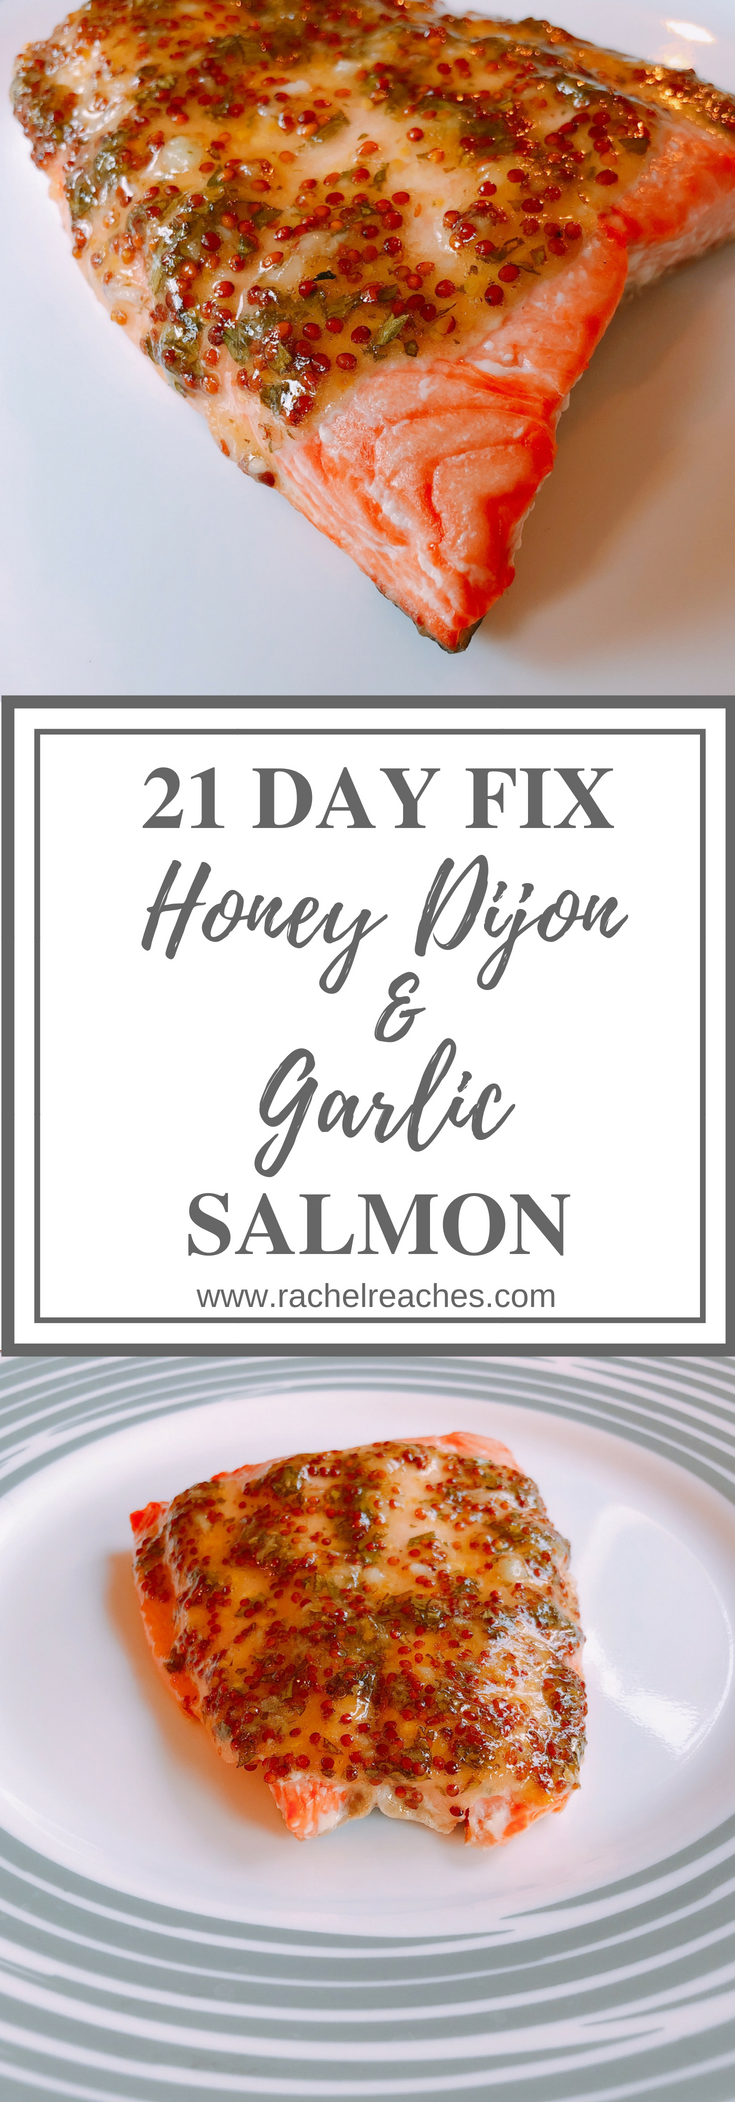 Honey Dijon & Garlic Salmon Pin - 21 Day Fix.png